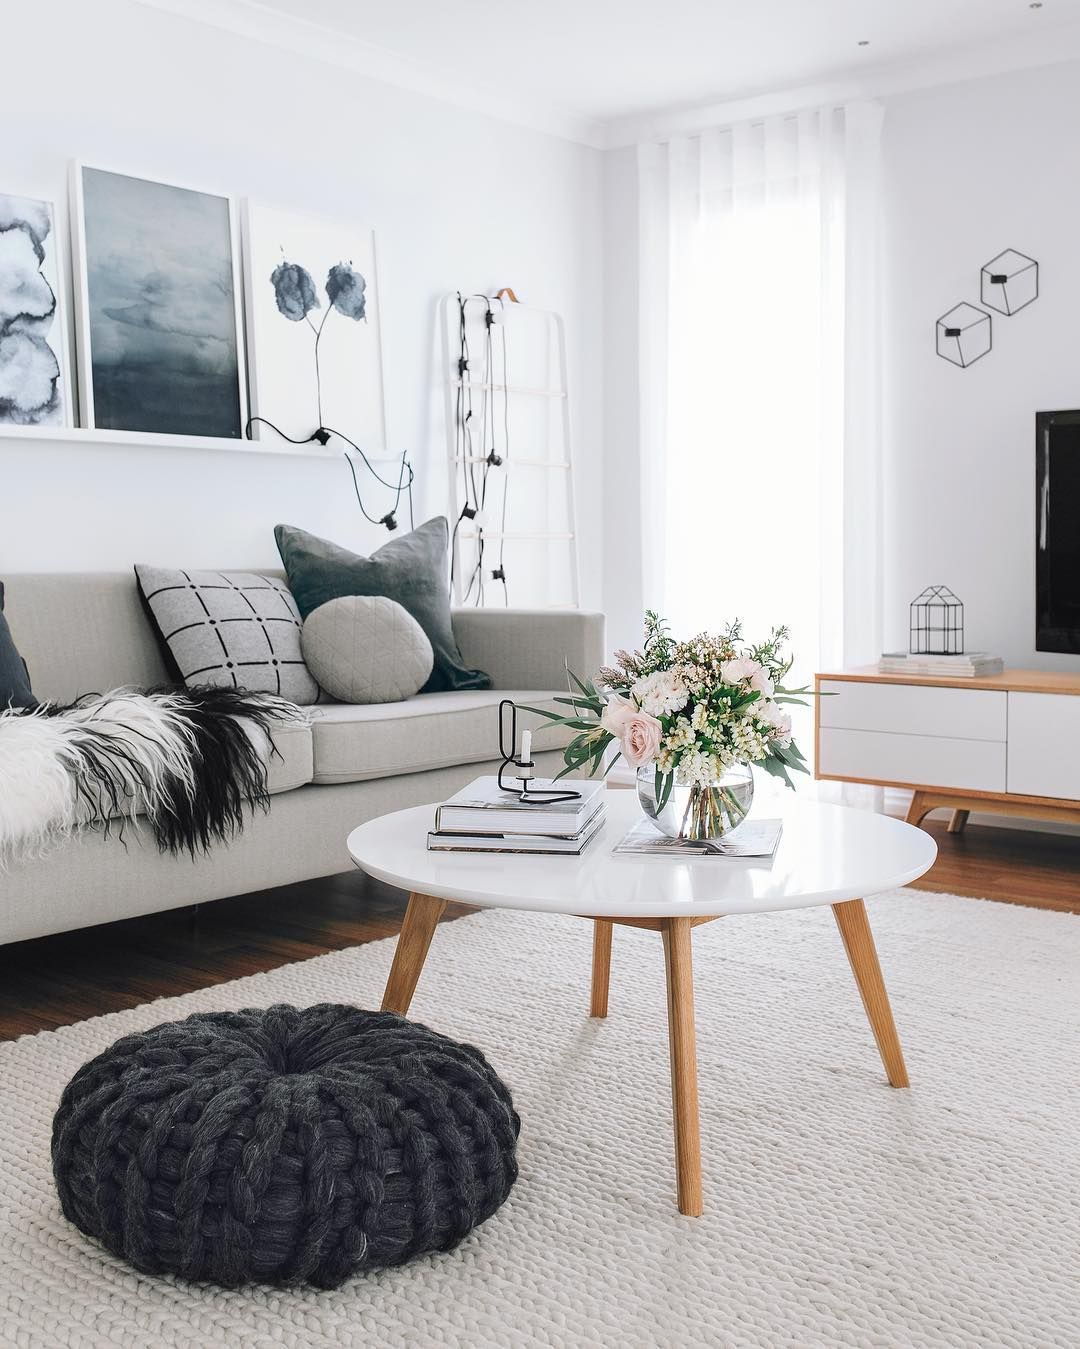 Get Inspired With These Amazing Living Rooms Decor Ideas: Смотрите это фото от @oh.eight.oh.nine на Instagram